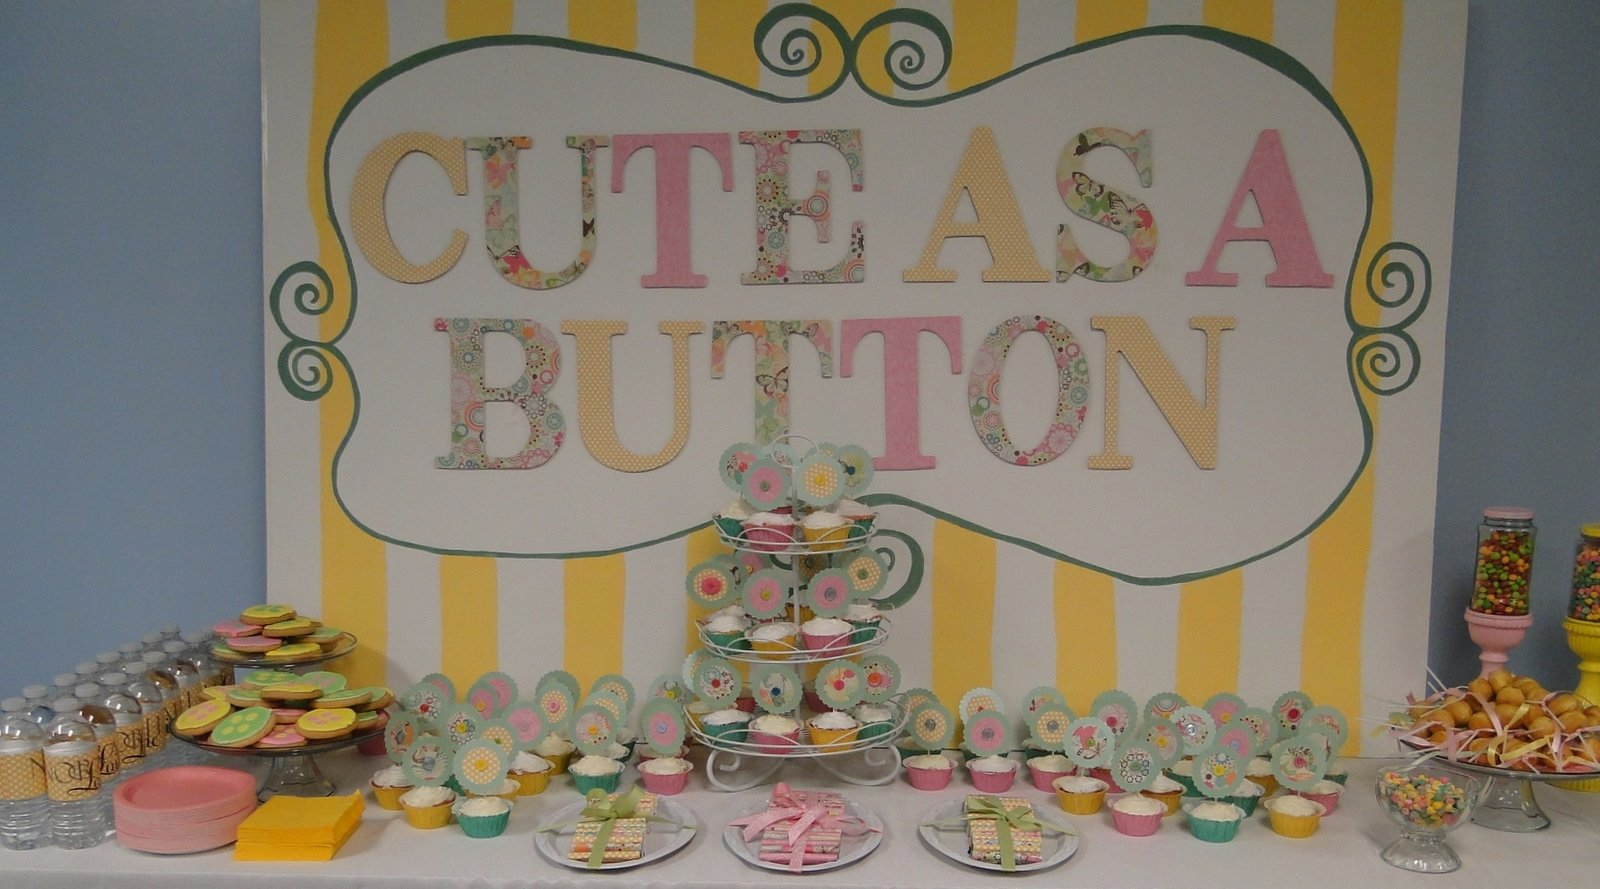 cute as a button baby shower invitations | free invitation ideas